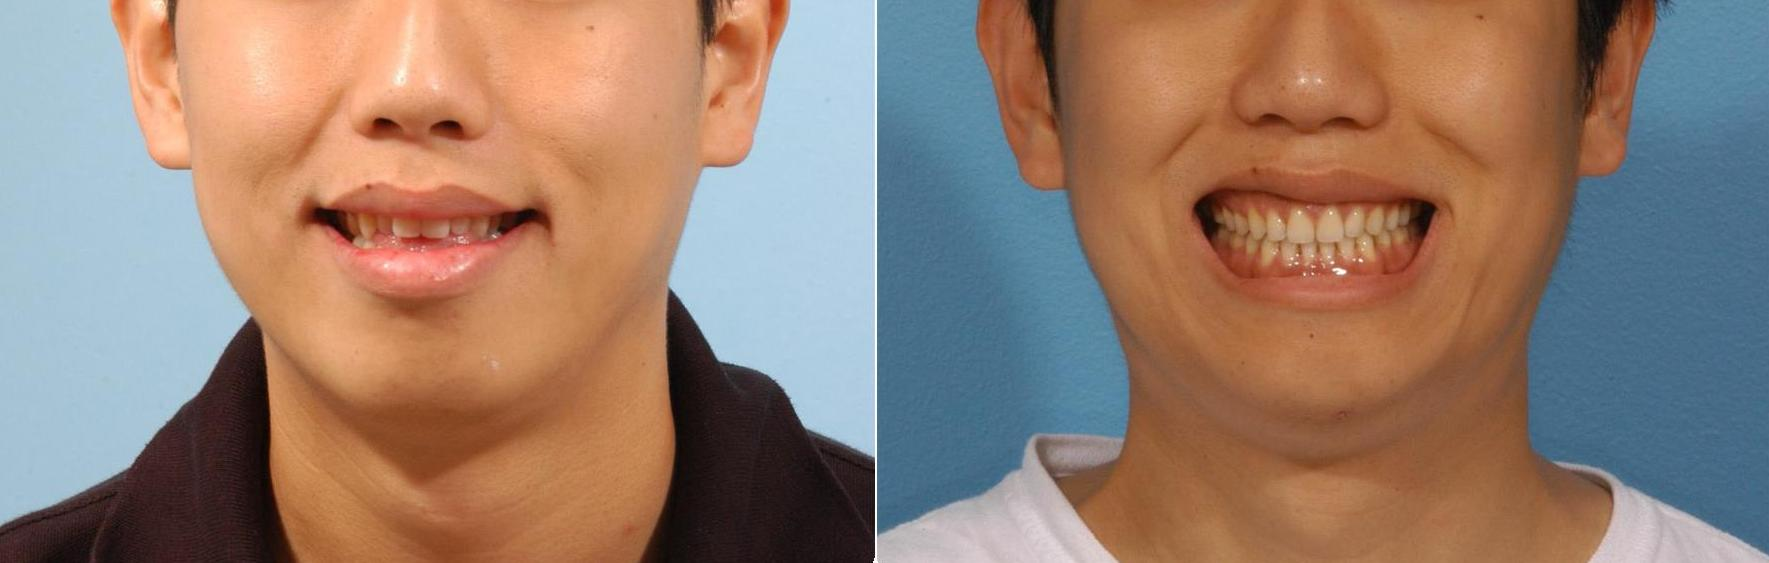 smile before and after